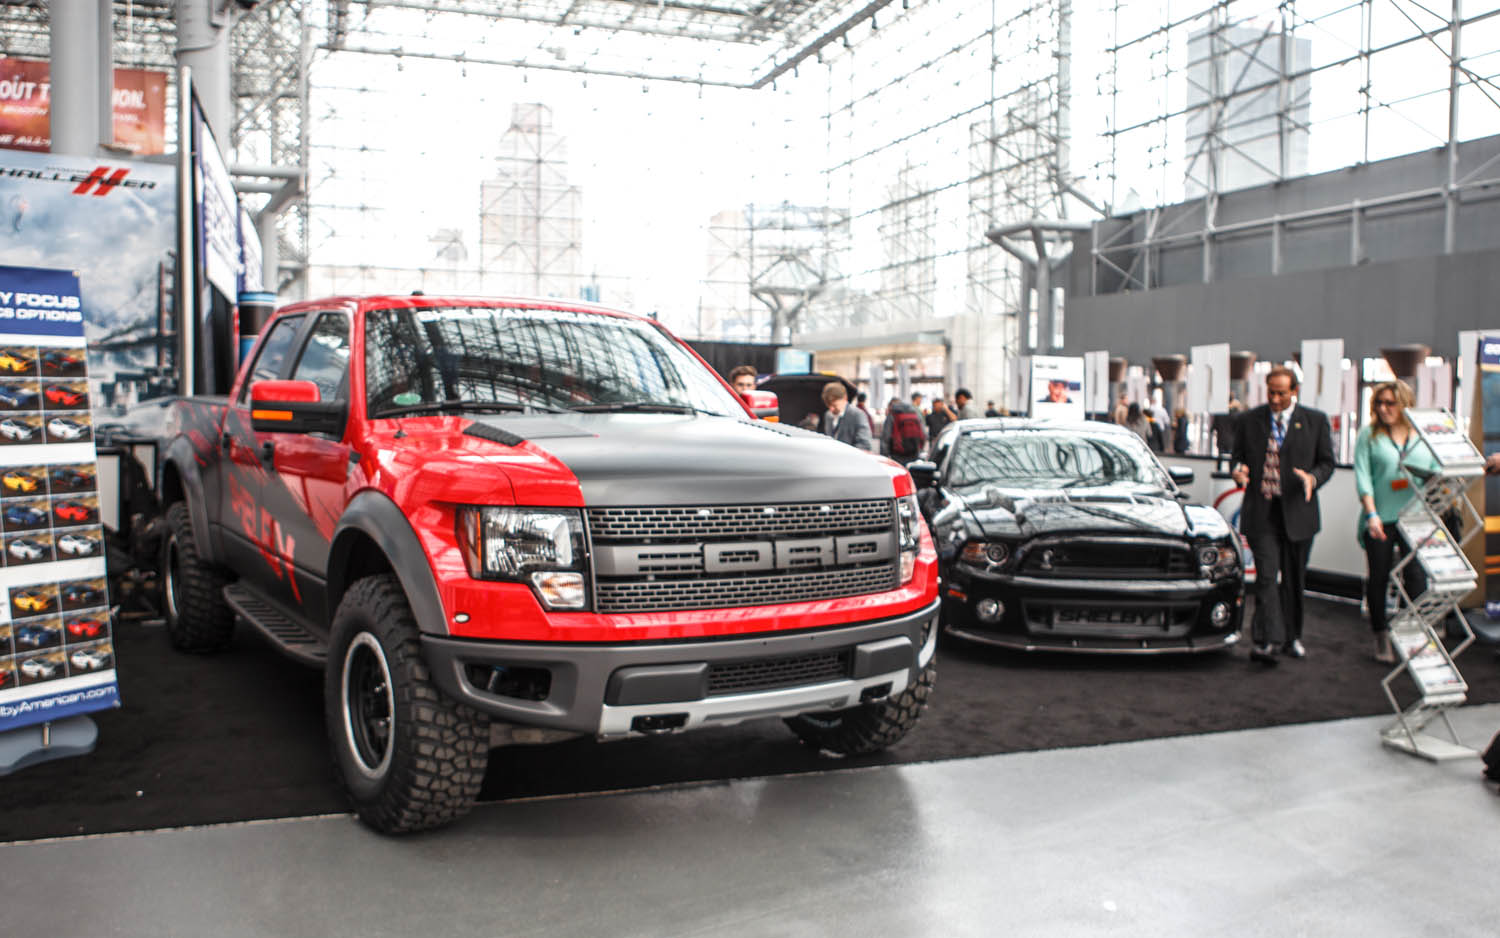 2013 Ford Shelby F-150 SVT Raptor First Look - Truck Trend